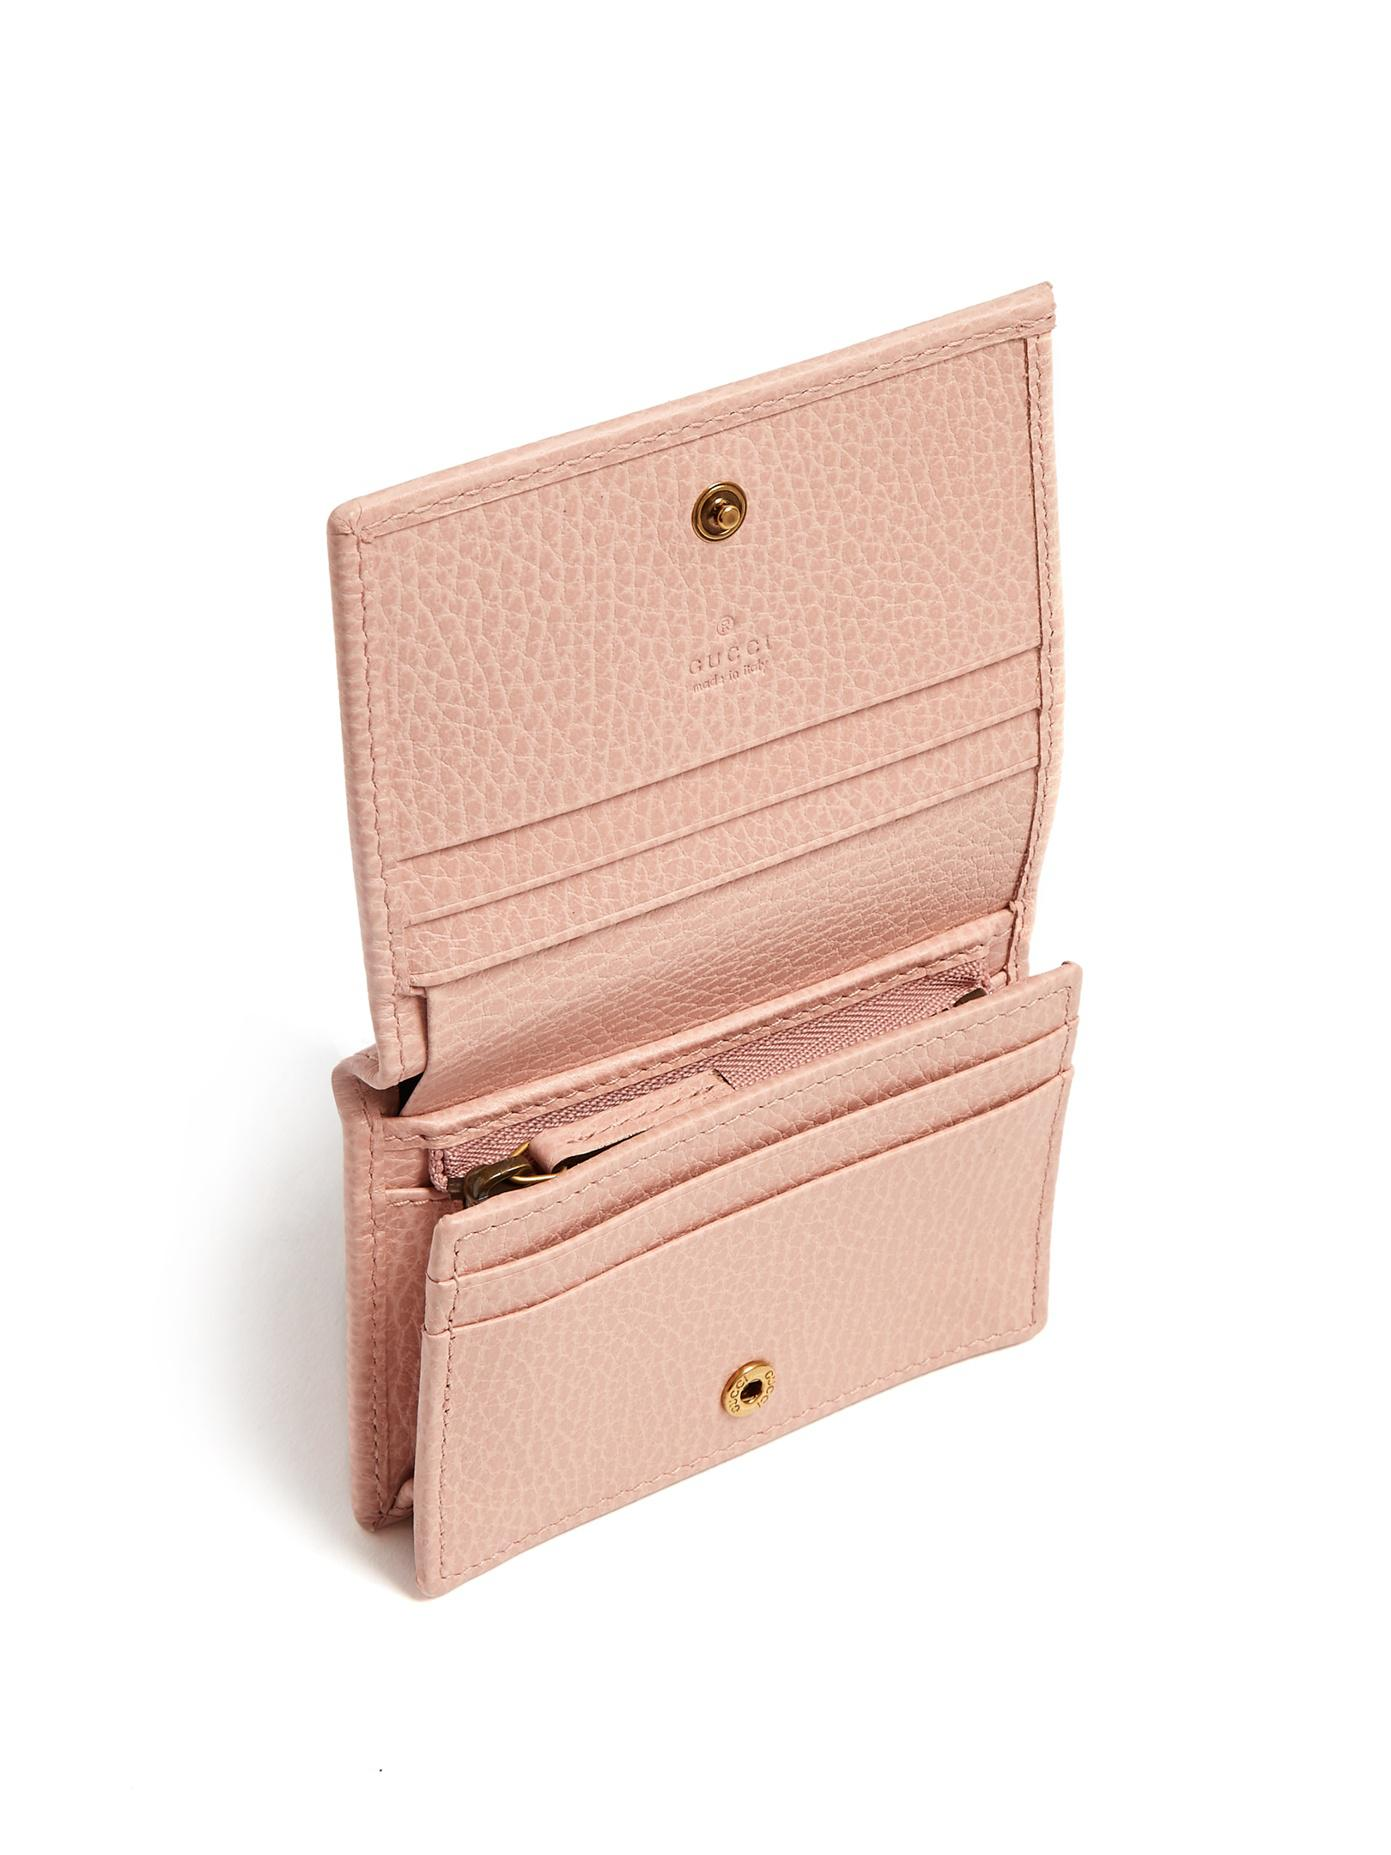 6f2d3b2046f525 Gucci Butterfly-embellished Leather Wallet in Pink - Lyst